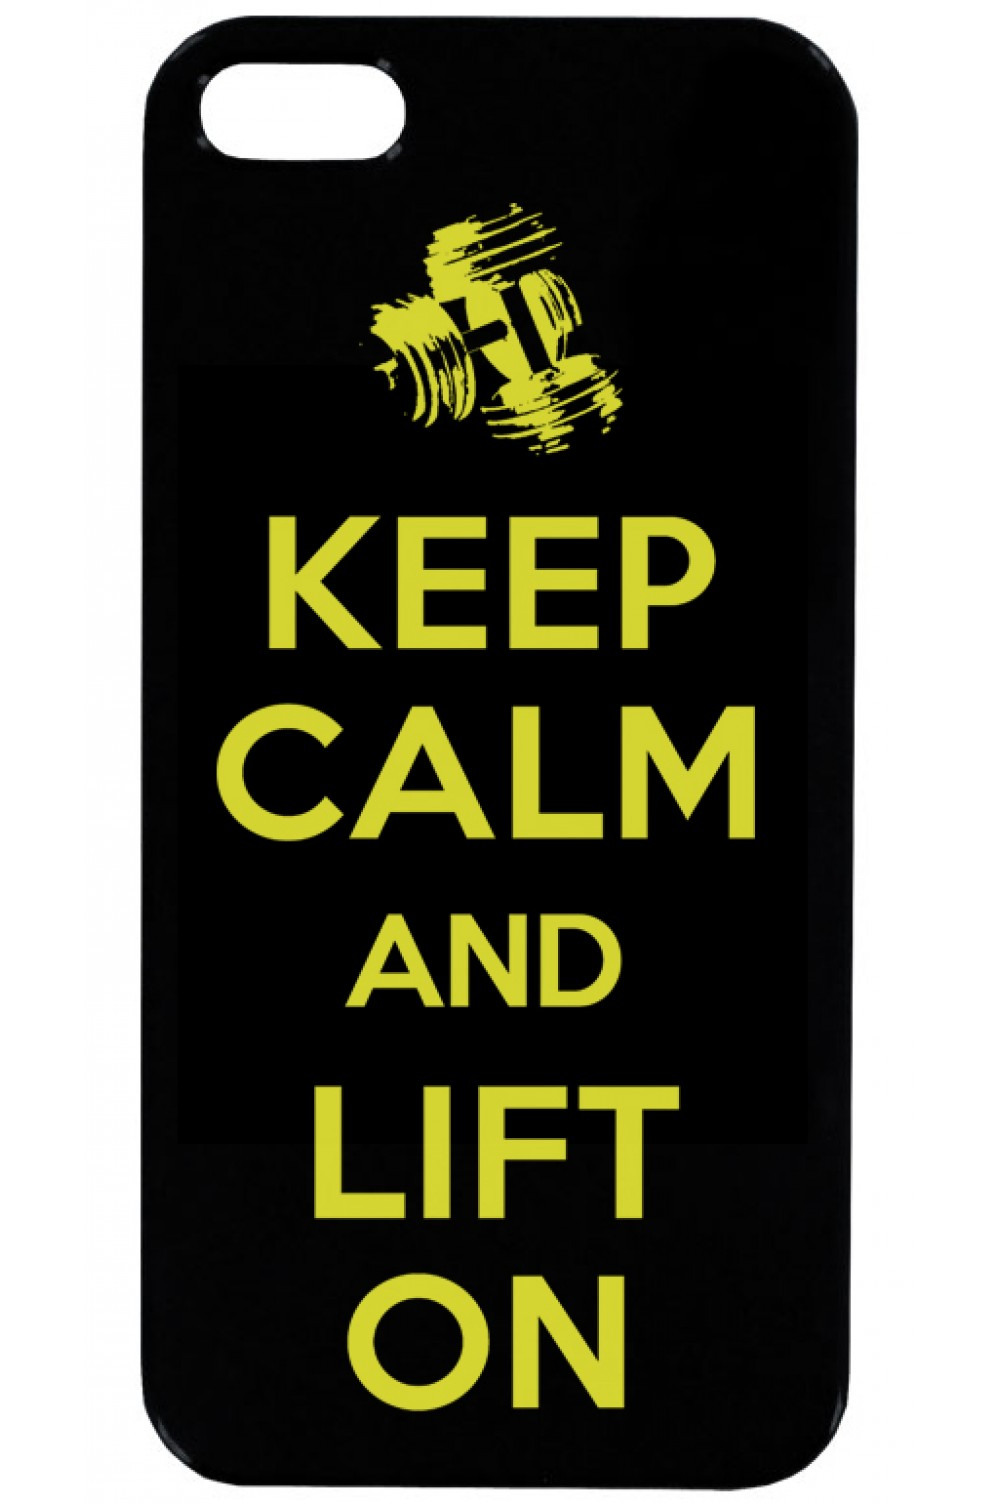 Phone Case - Keep calm and lift on